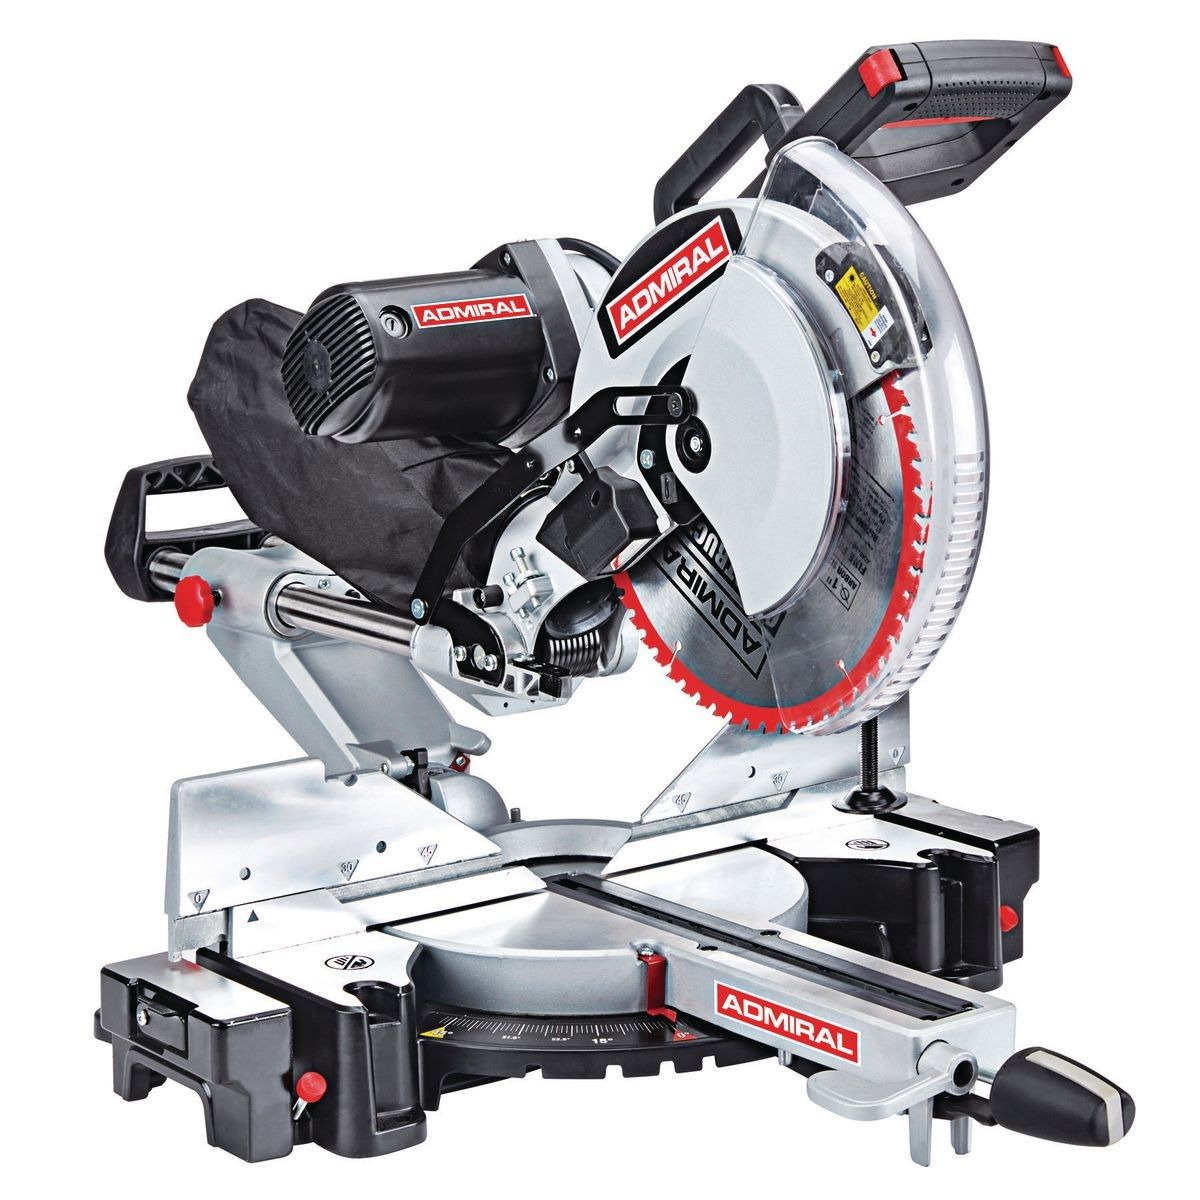 The Admiral 12 In Dual Bevel Sliding Compound Miter Saw Sku 64686 Is On Sale For 169 99 With Code 9 Sliding Compound Miter Saw Compound Mitre Saw Miter Saw